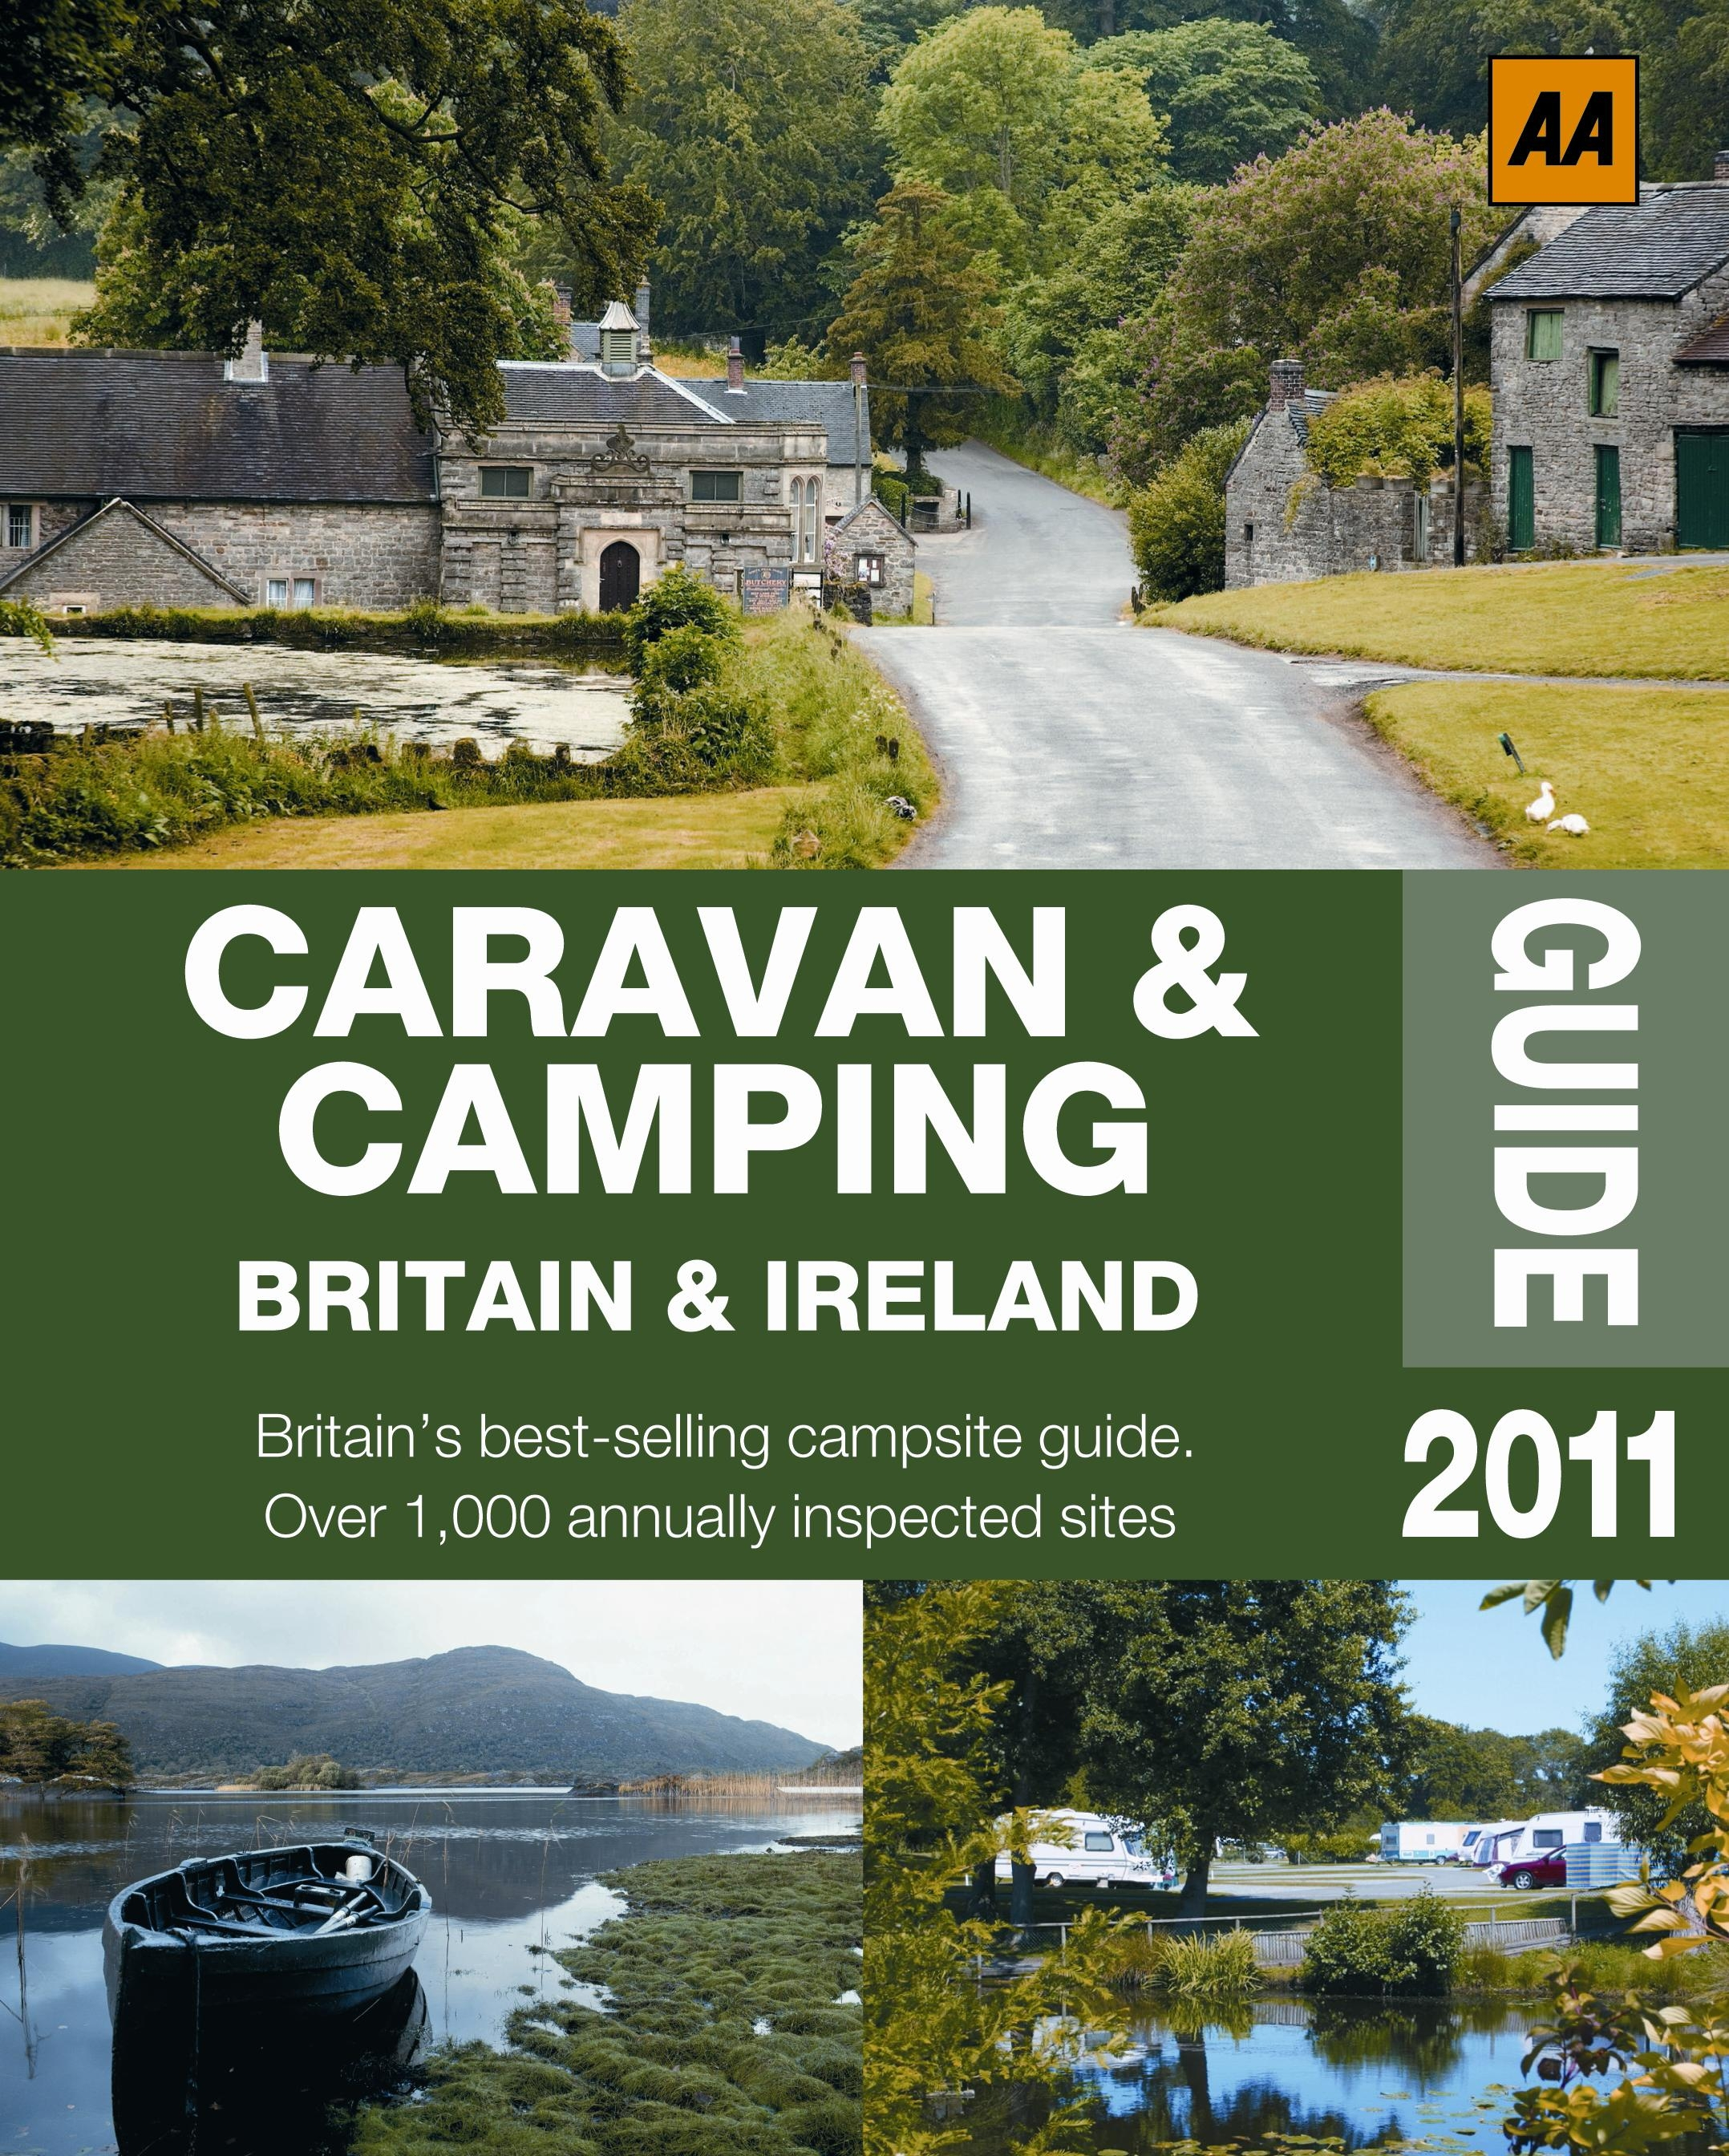 How to find the best campsites in the UK in 2011